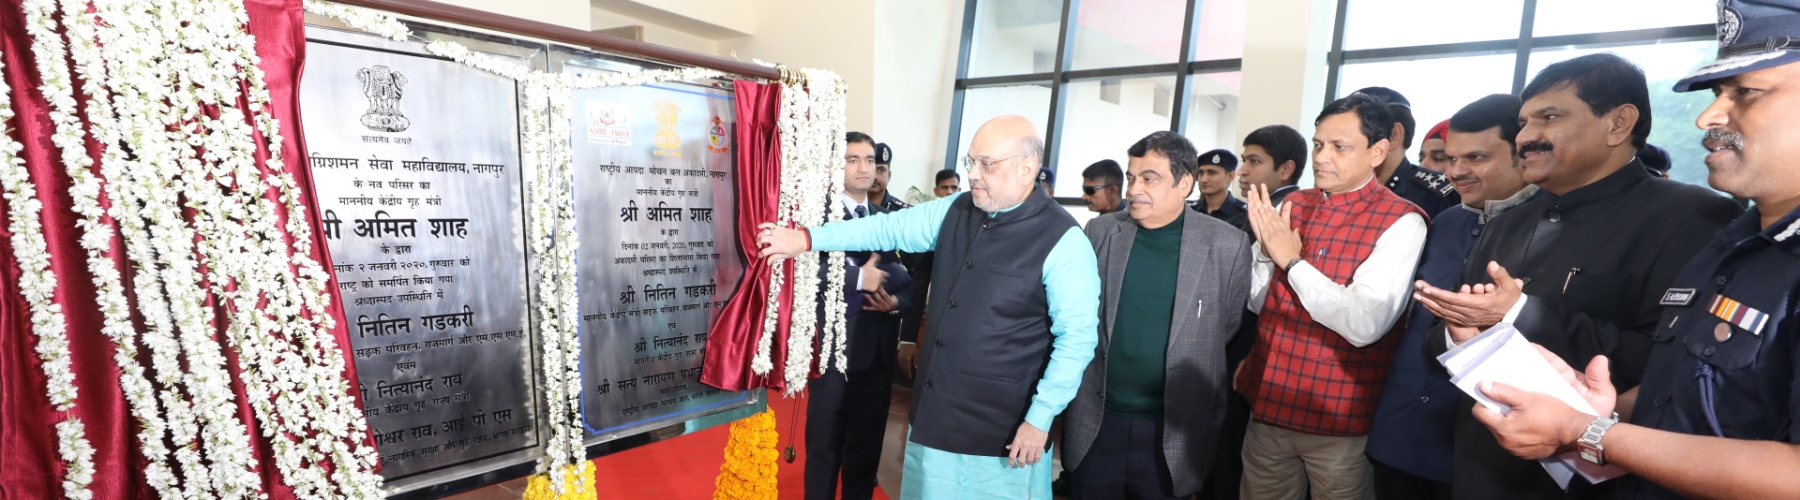 Union Minister for Home Affairs, Shri Amit Shah dedicating to the Nation the new campus of the National Fire Services College (NFSC) in Nagpur,  on January 2, 2020.